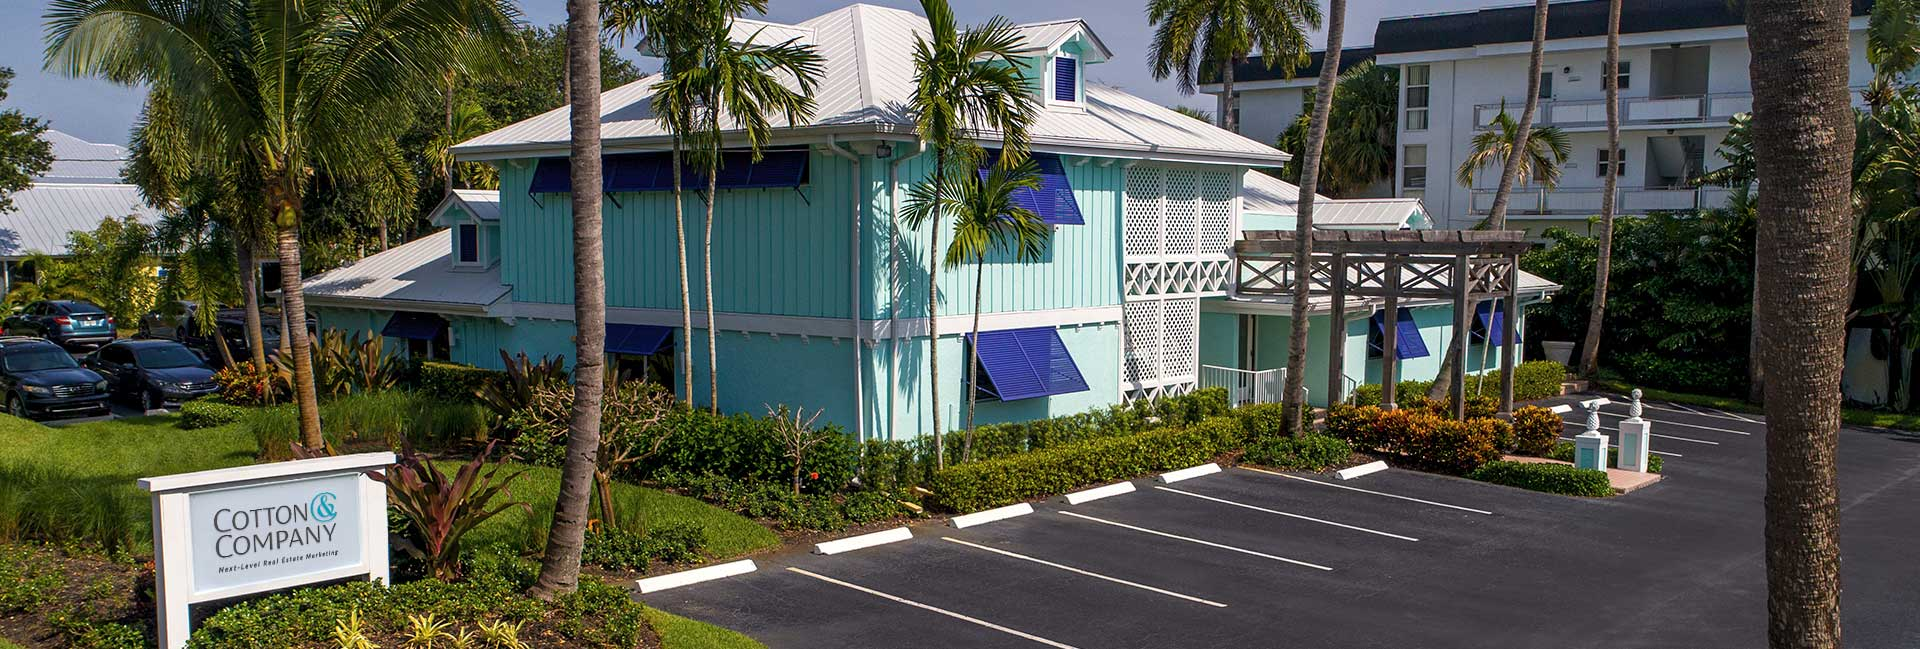 blue building in stuart florida cotton and company head quaters